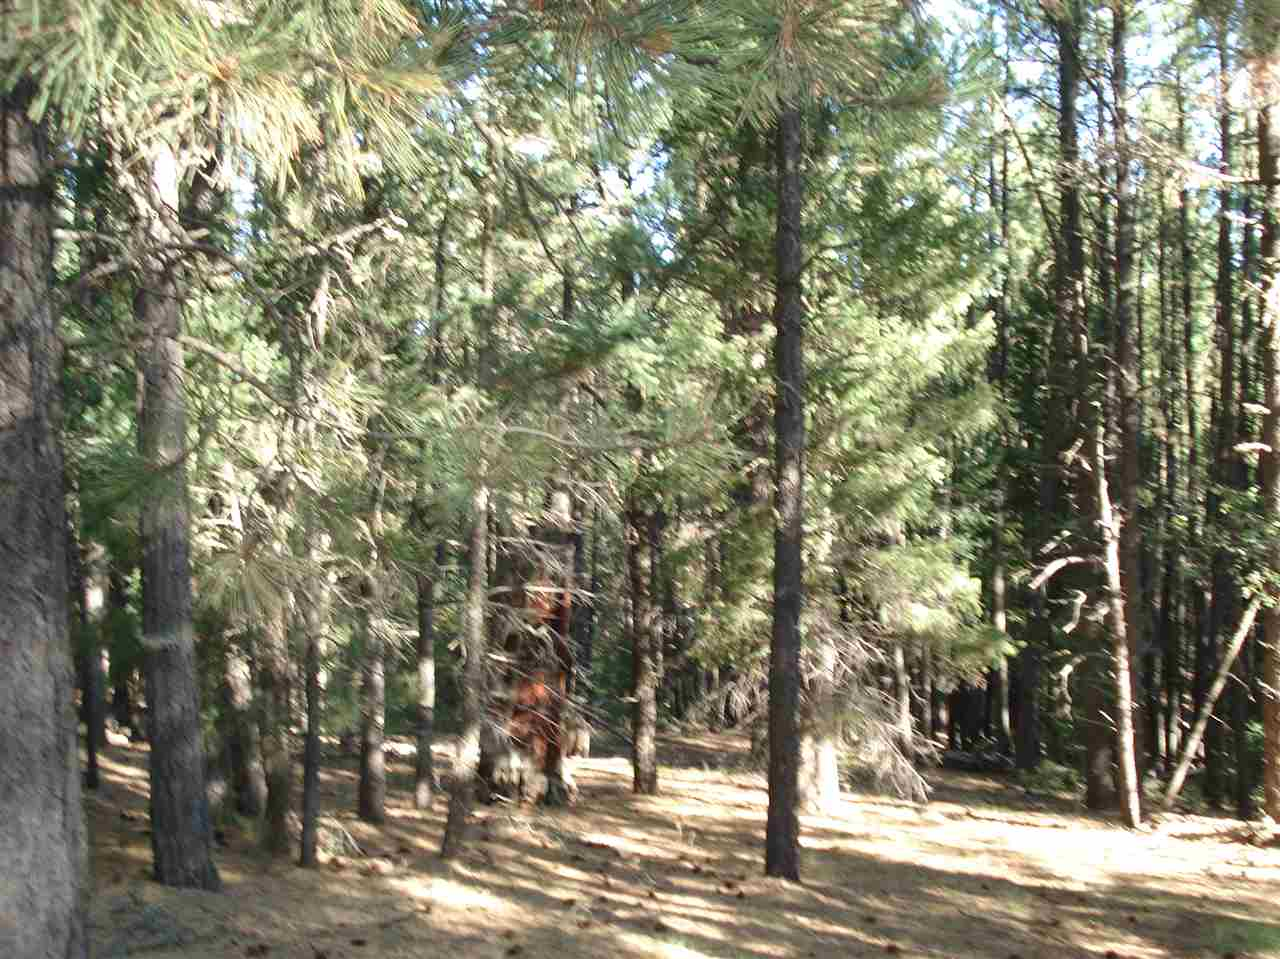 Lot 1472 Peralta Drive, Angel Fire, NM 87710